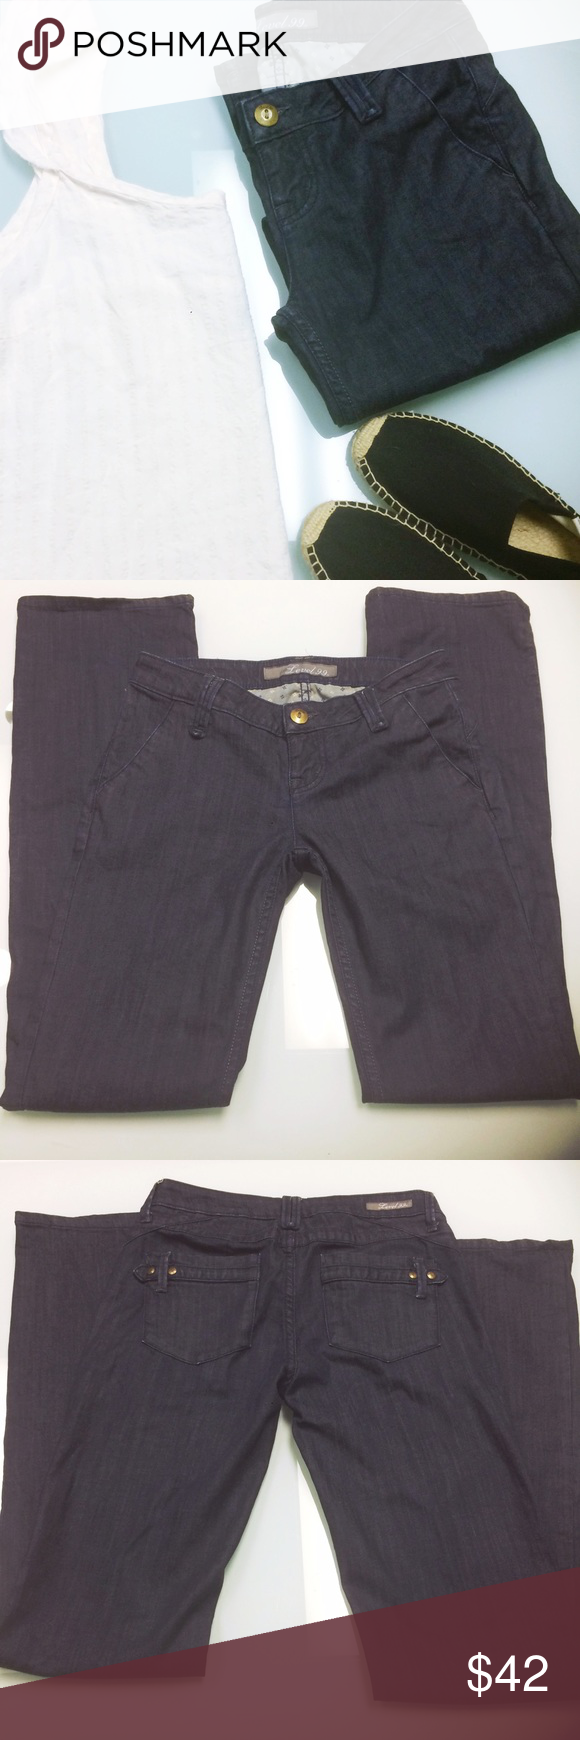 Level 99 Pocket Detail Indigo Jeans Level 99 jeans in a dark Indigo wash with rear pocket details. These are a boot cut style. Size 26. This brand often sells at Nordstrom and Anthropologie. Anthropologie Jeans Boot Cut